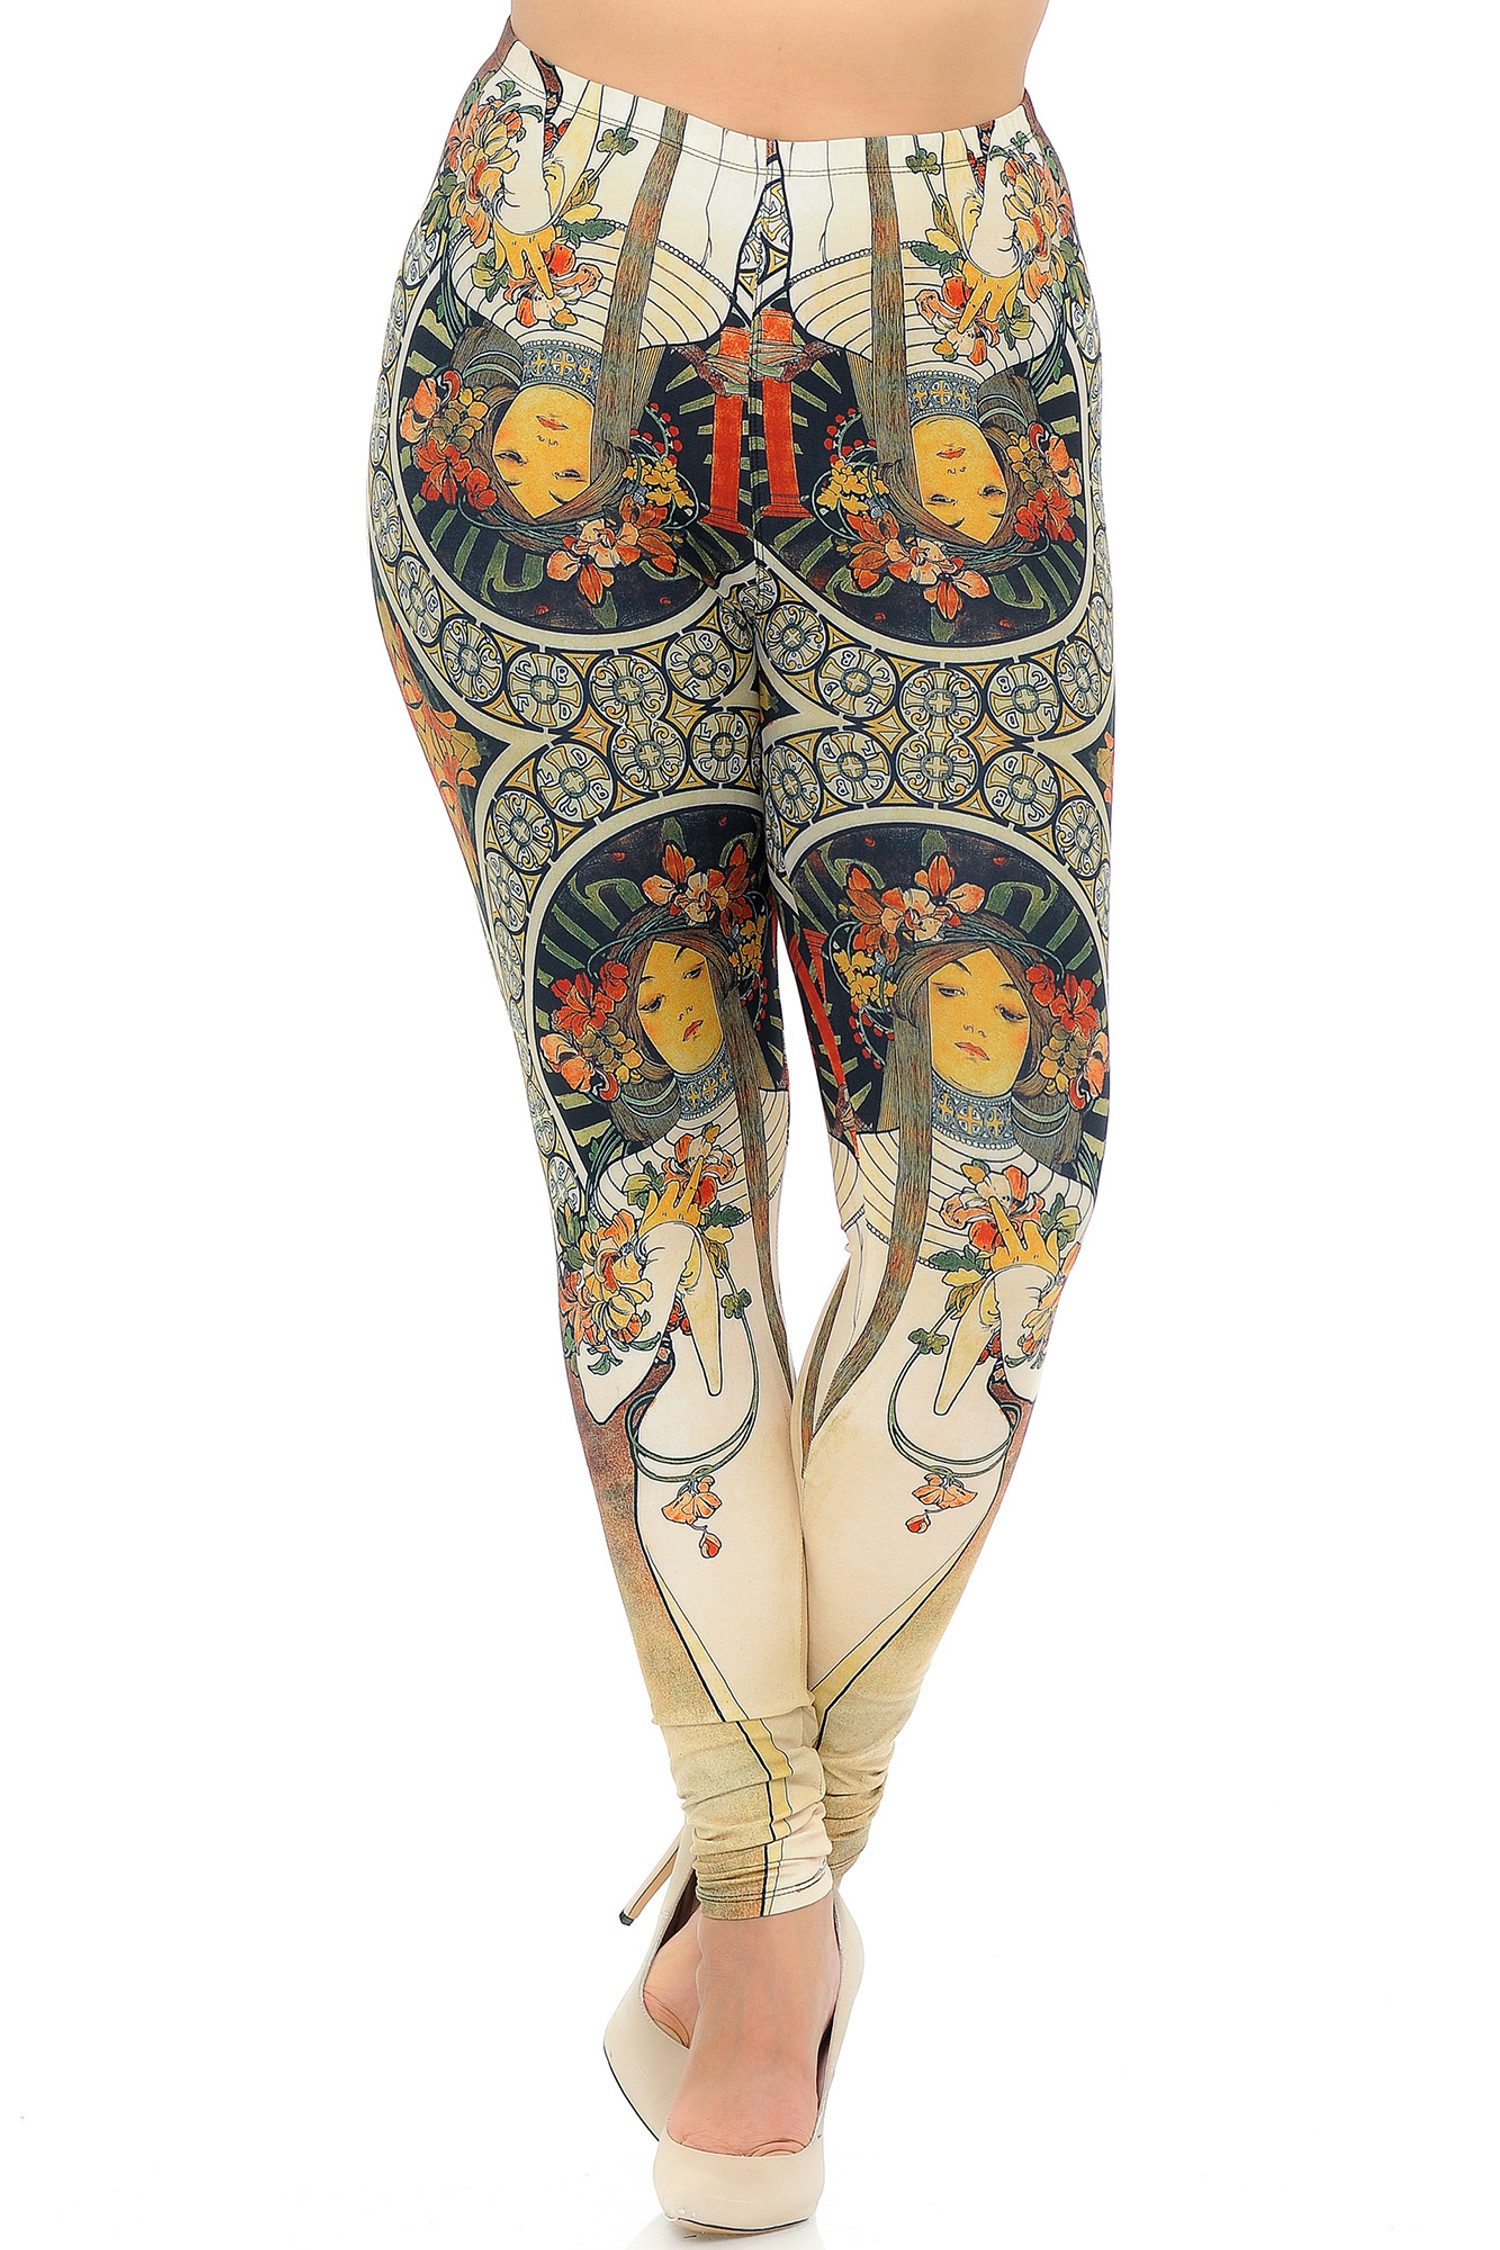 Creamy Soft Gaia Mucha Plus Size Leggings - USA Fashion™